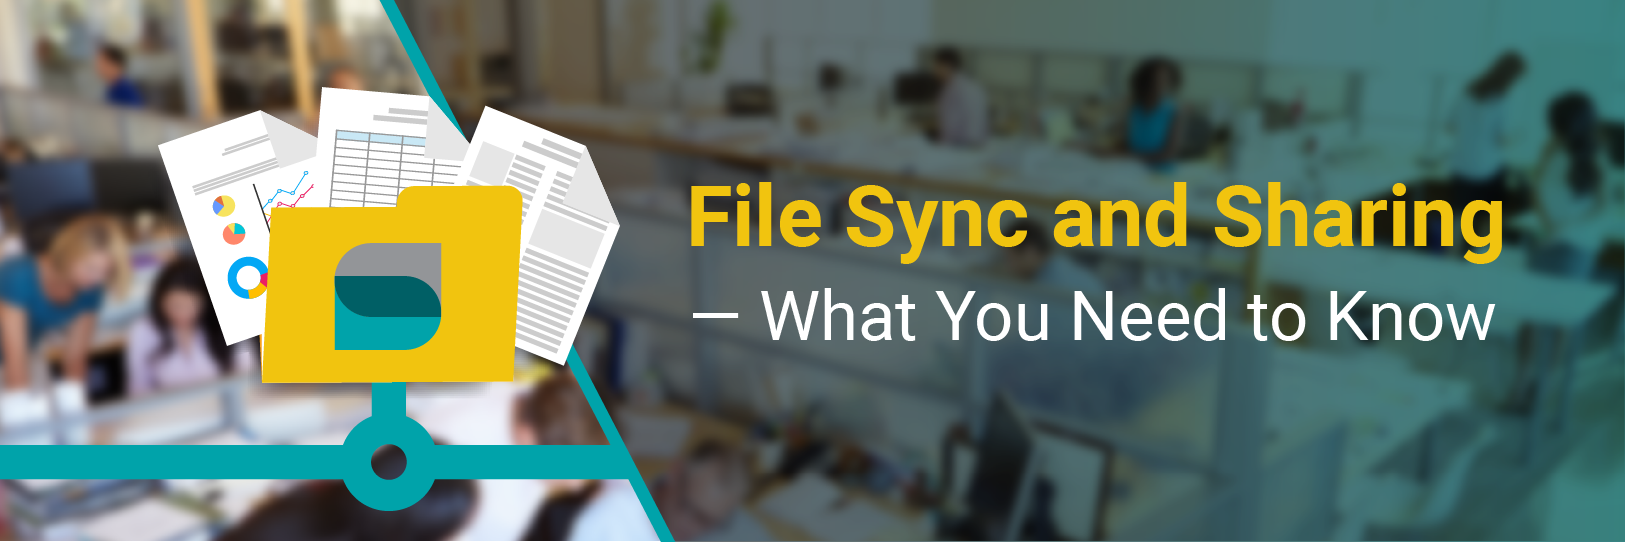 File Sync and Sharing — What You Need to Know